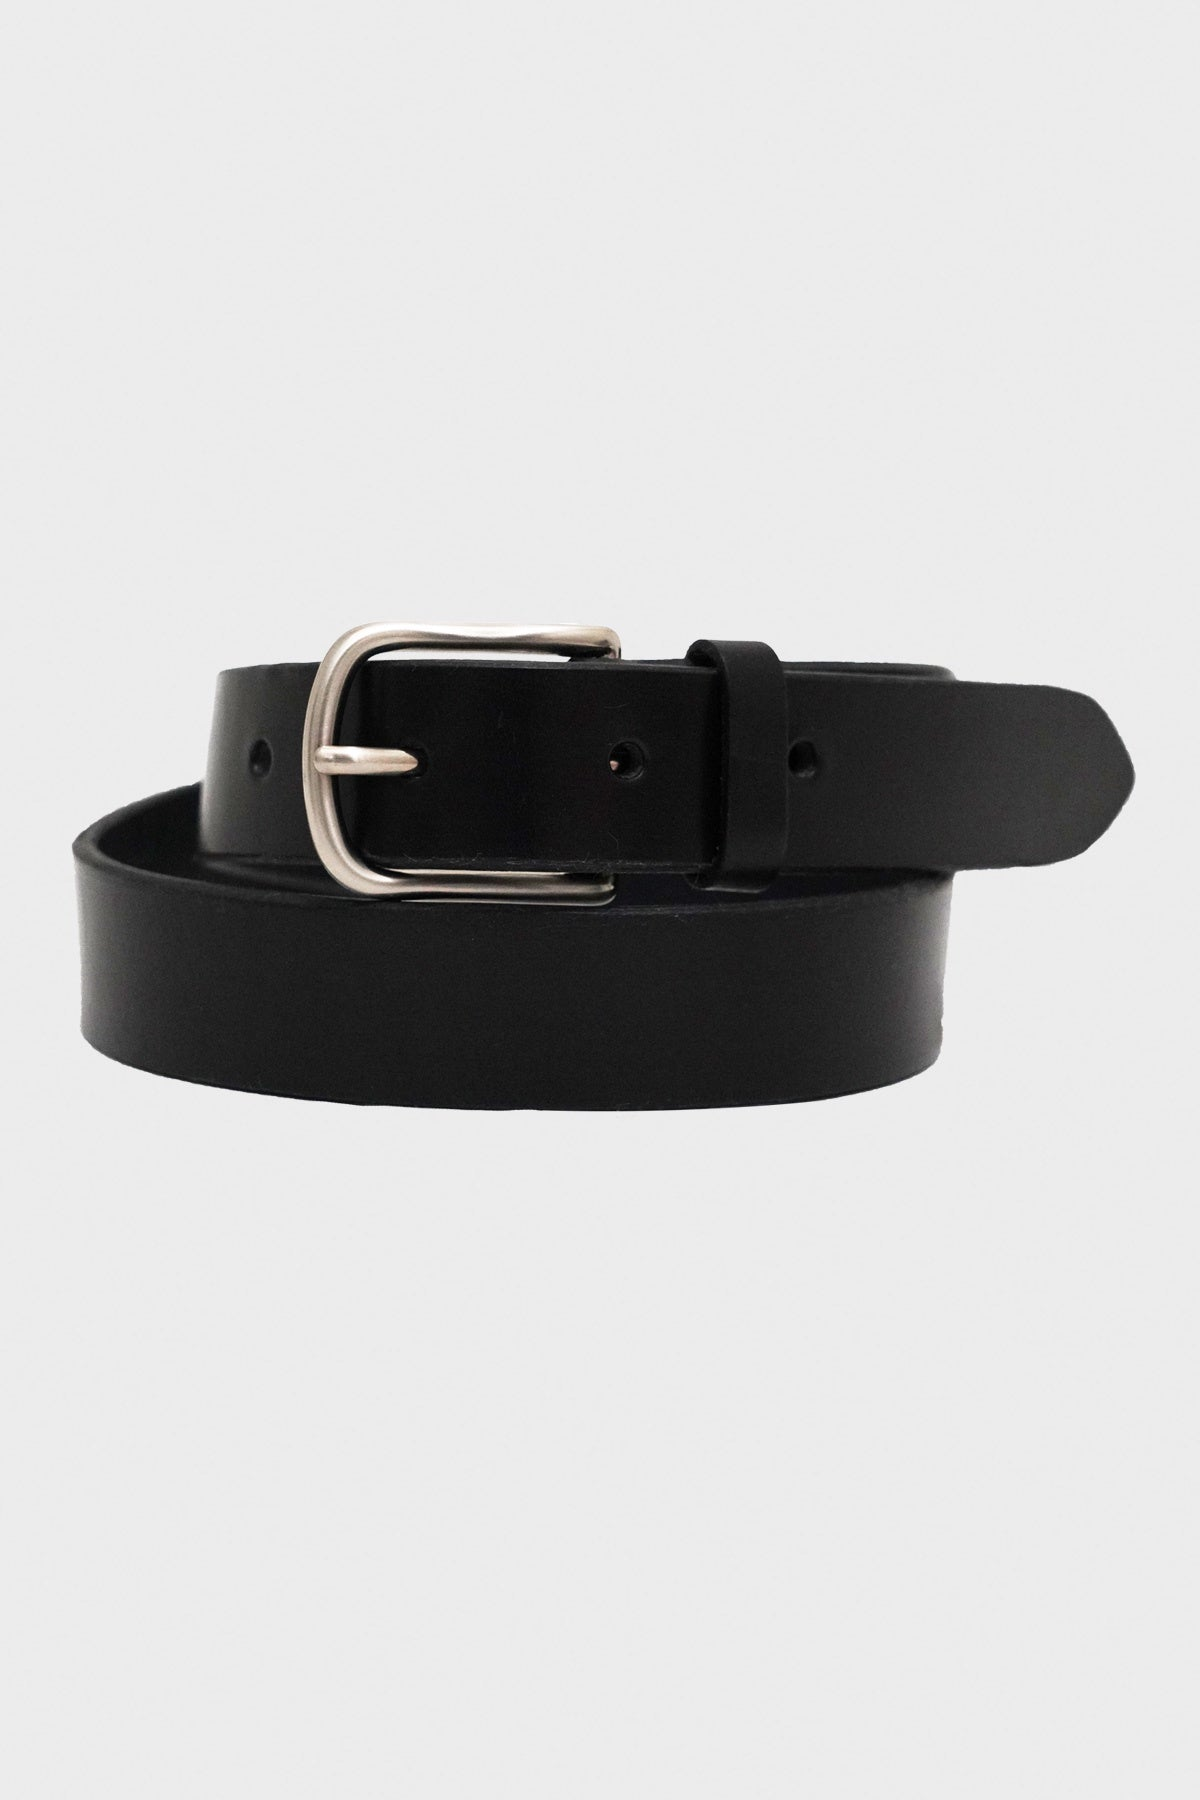 Laperruque - Belt - Black Leather and Nickel Buckle - Canoe Club